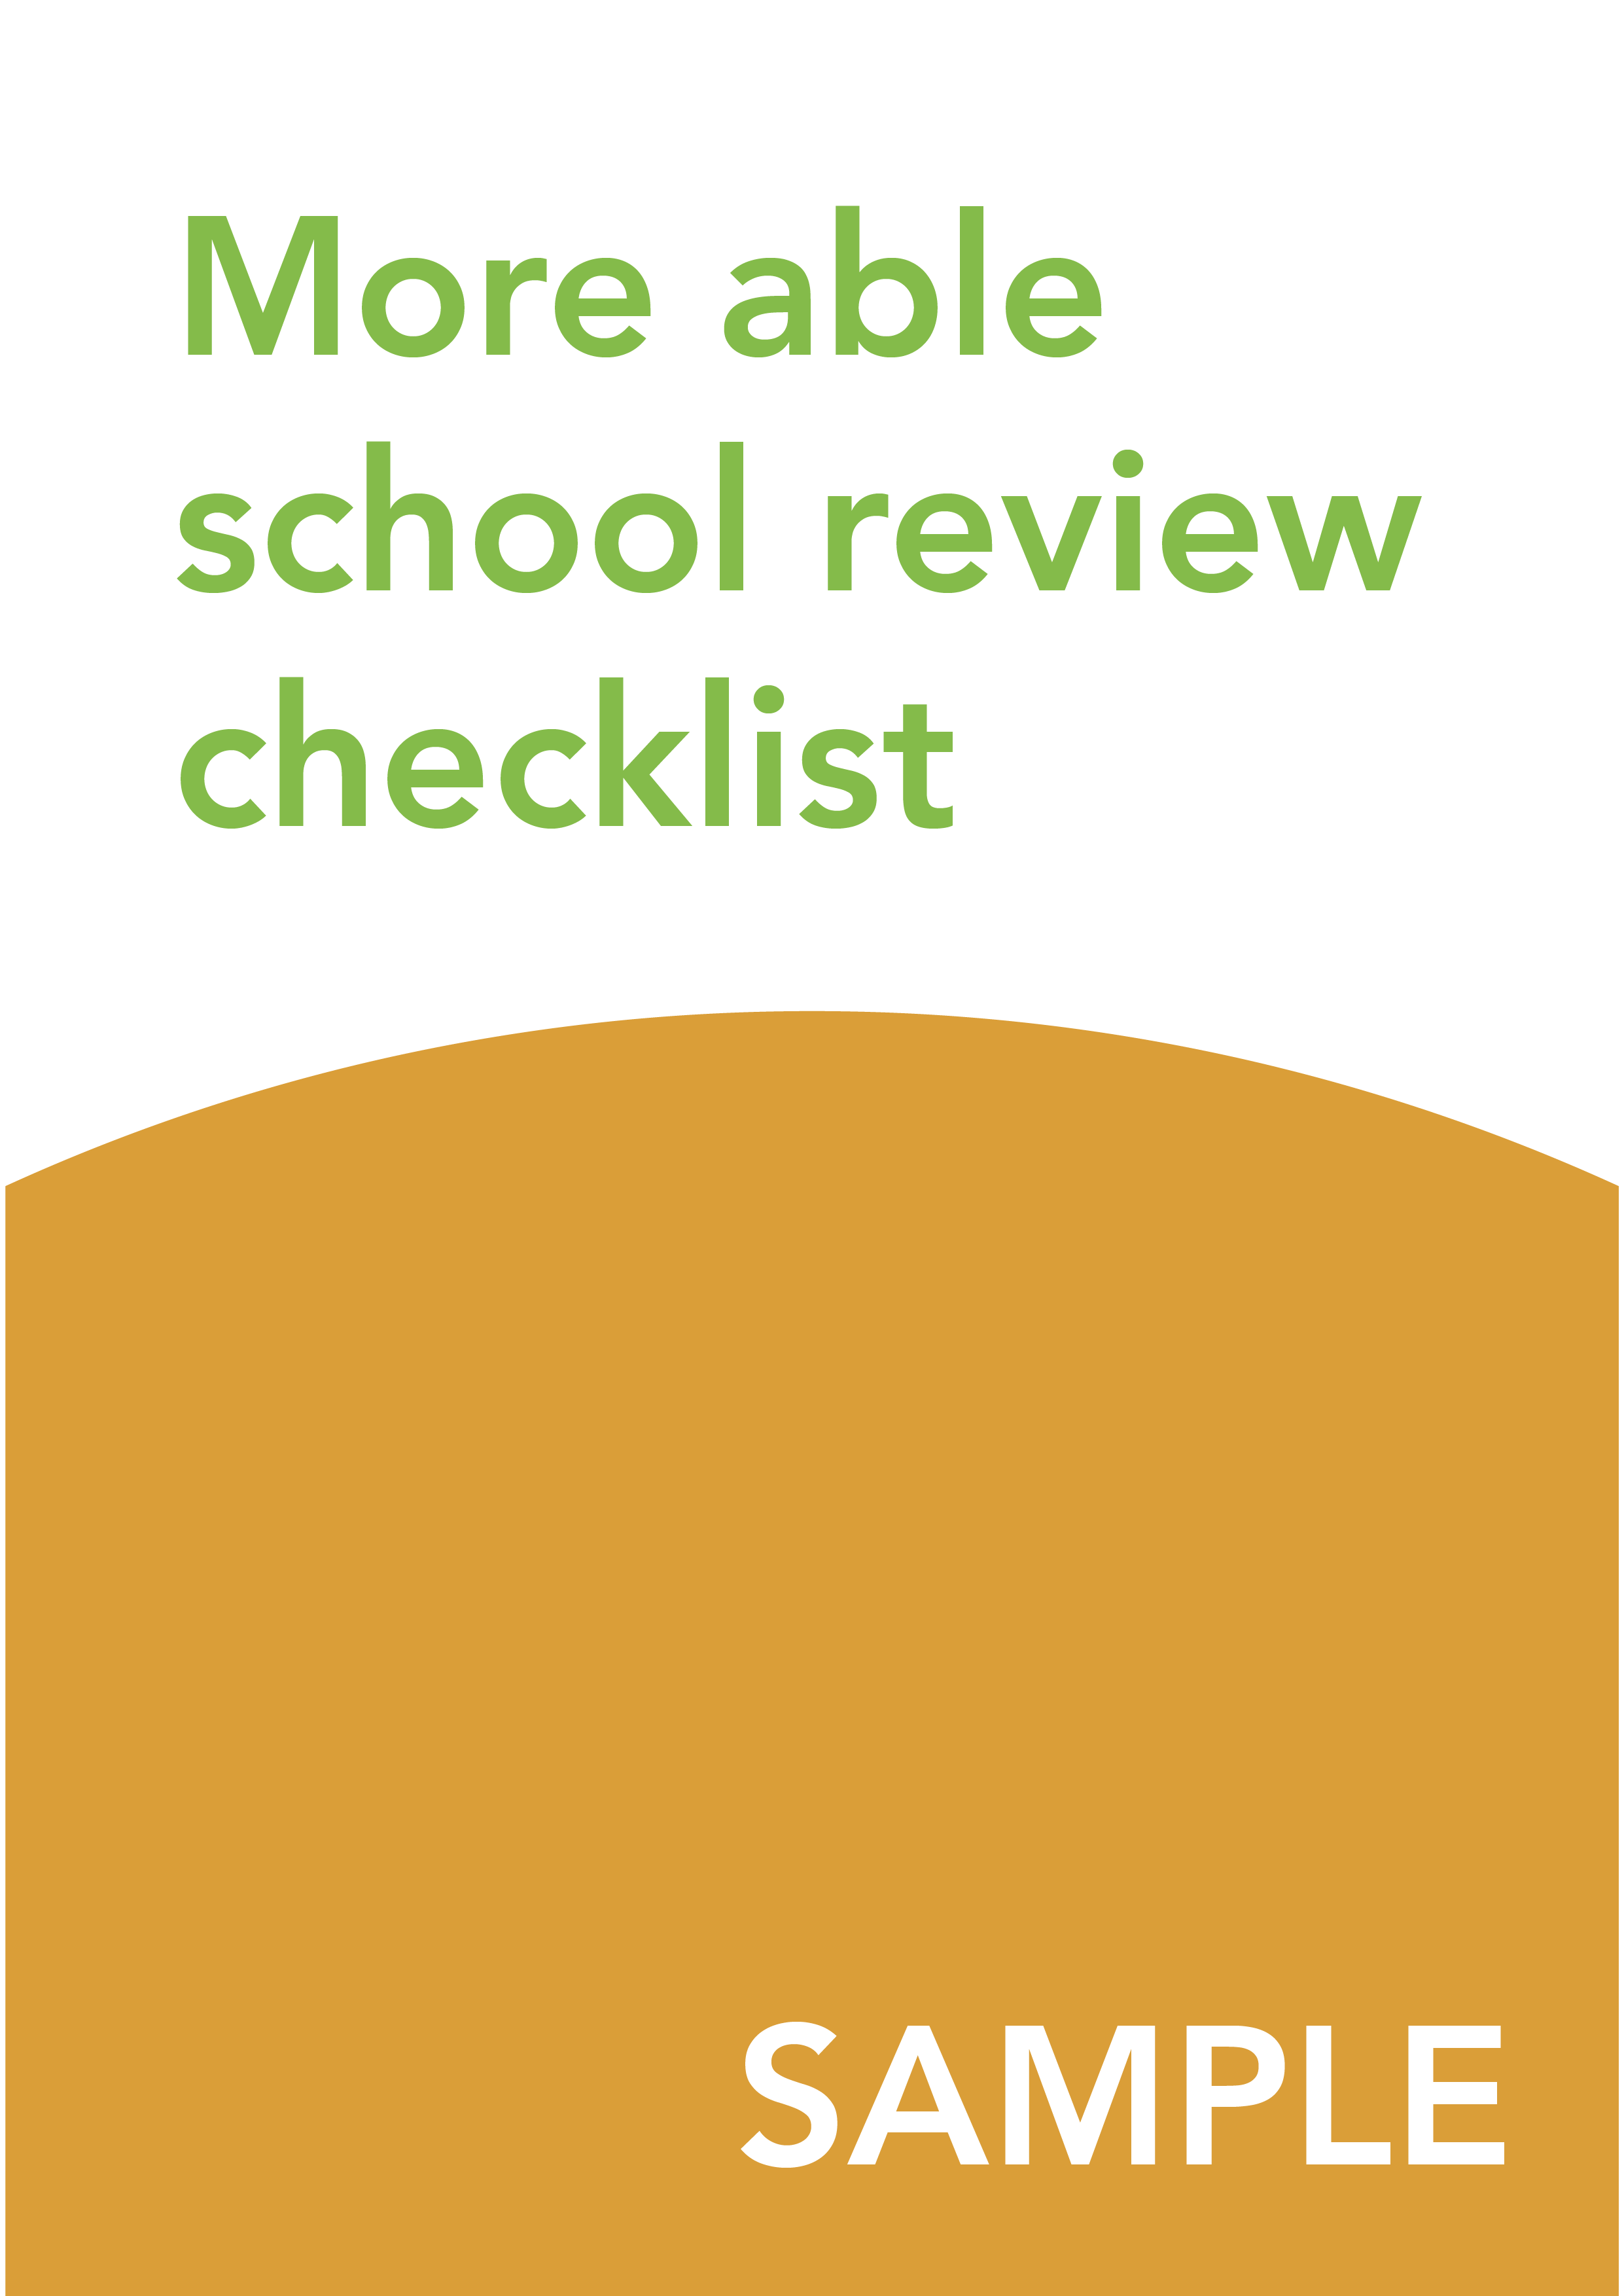 School review checklist